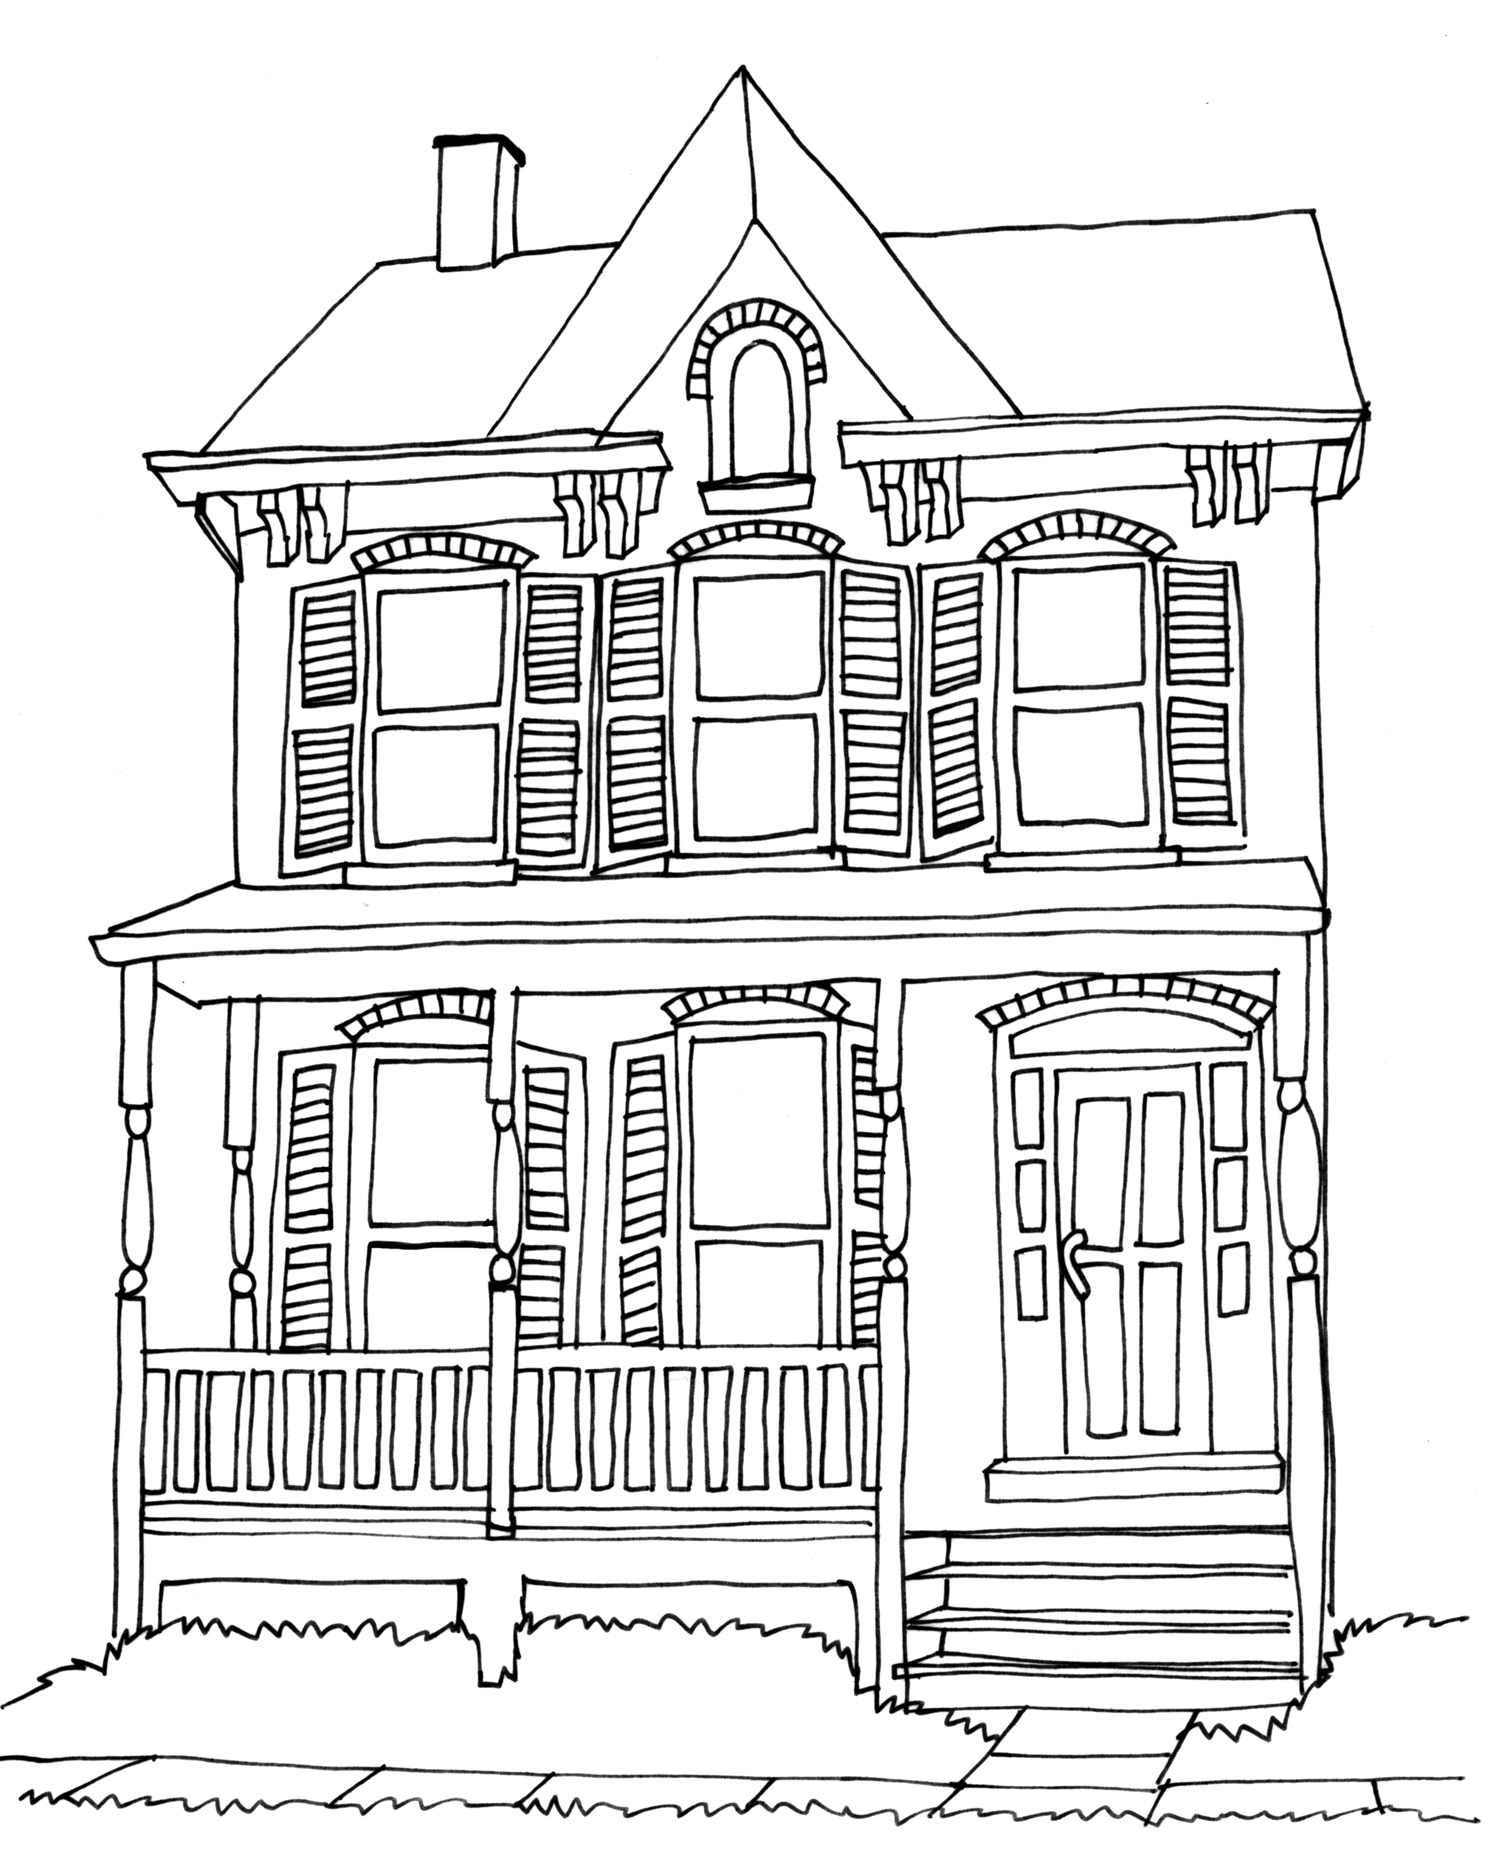 House drawing picture for Home design drawing